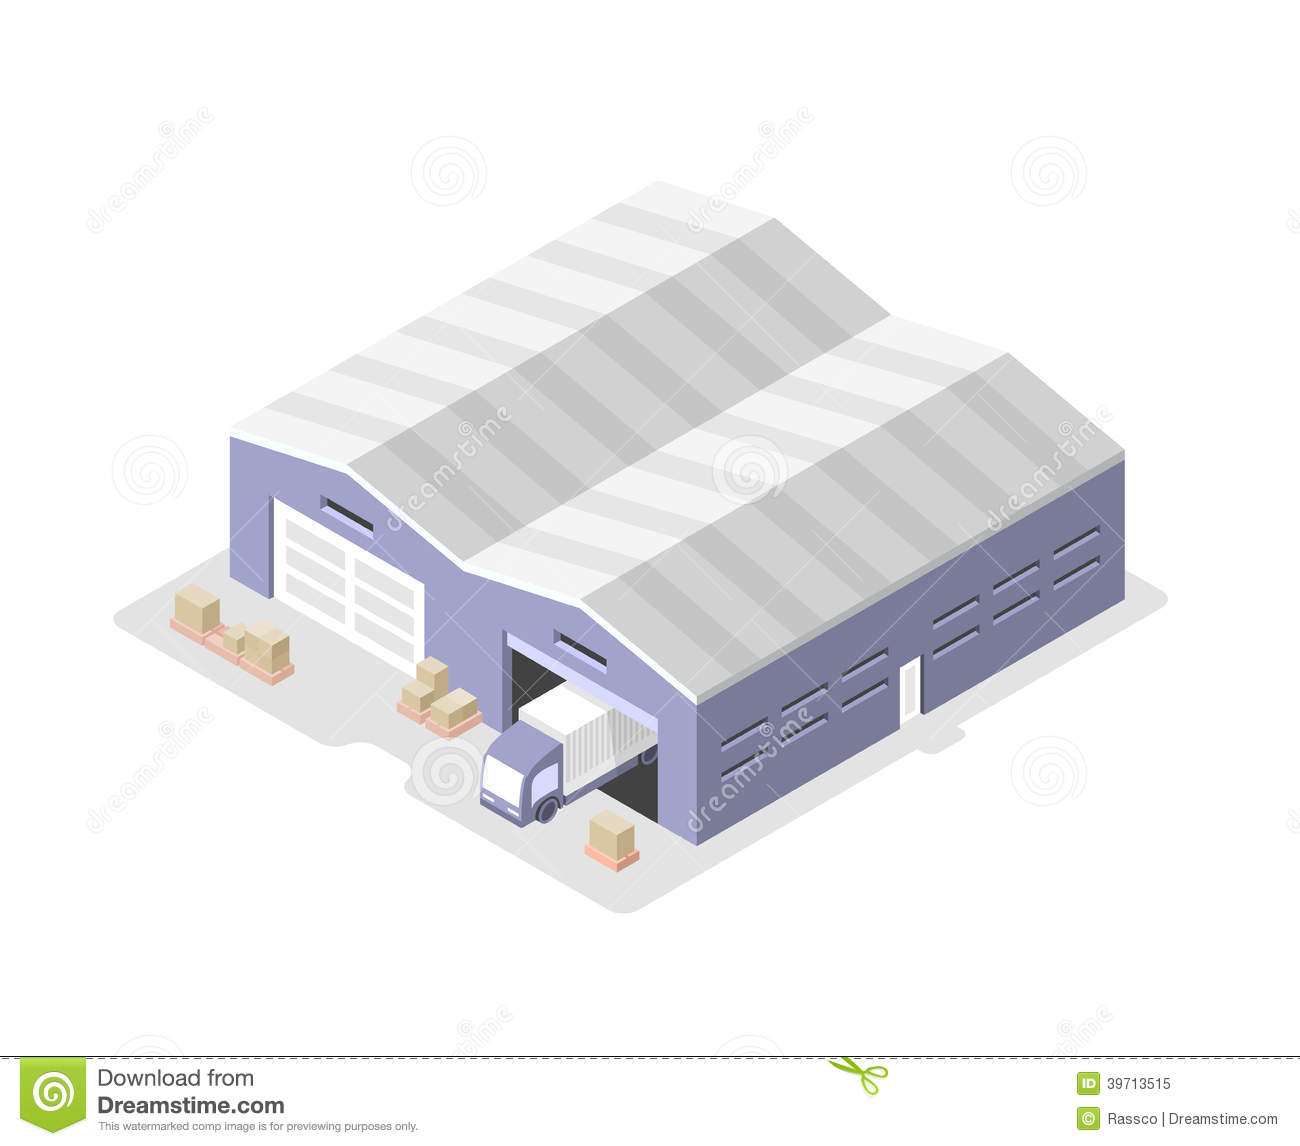 Warehousing And Distribution Clipart.